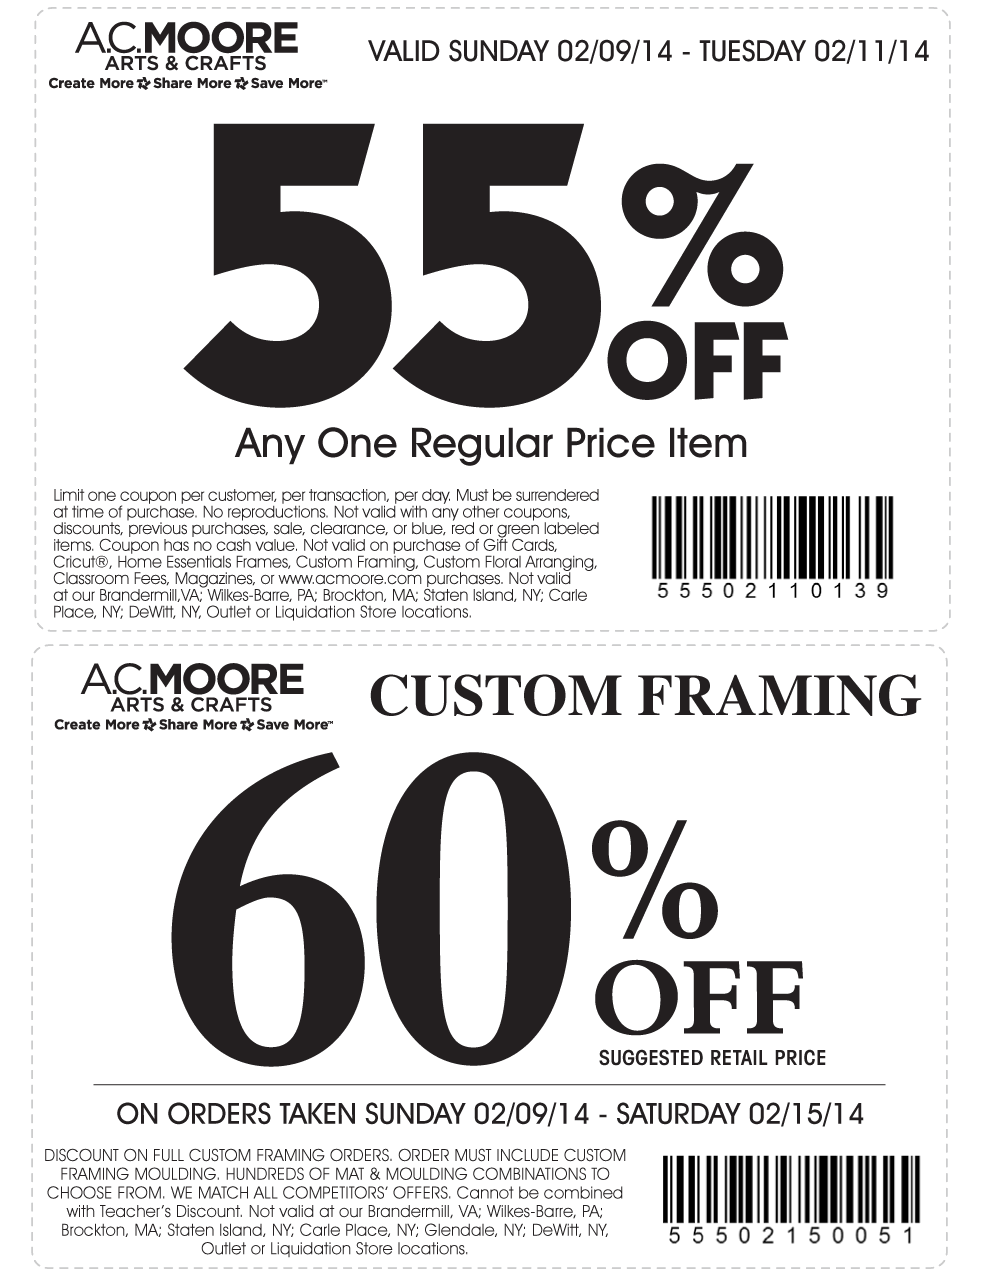 graphic relating to Ac Moore Printable Coupons referred to as Pinned February 10th: 55% off a solitary product at A.#C. Moore